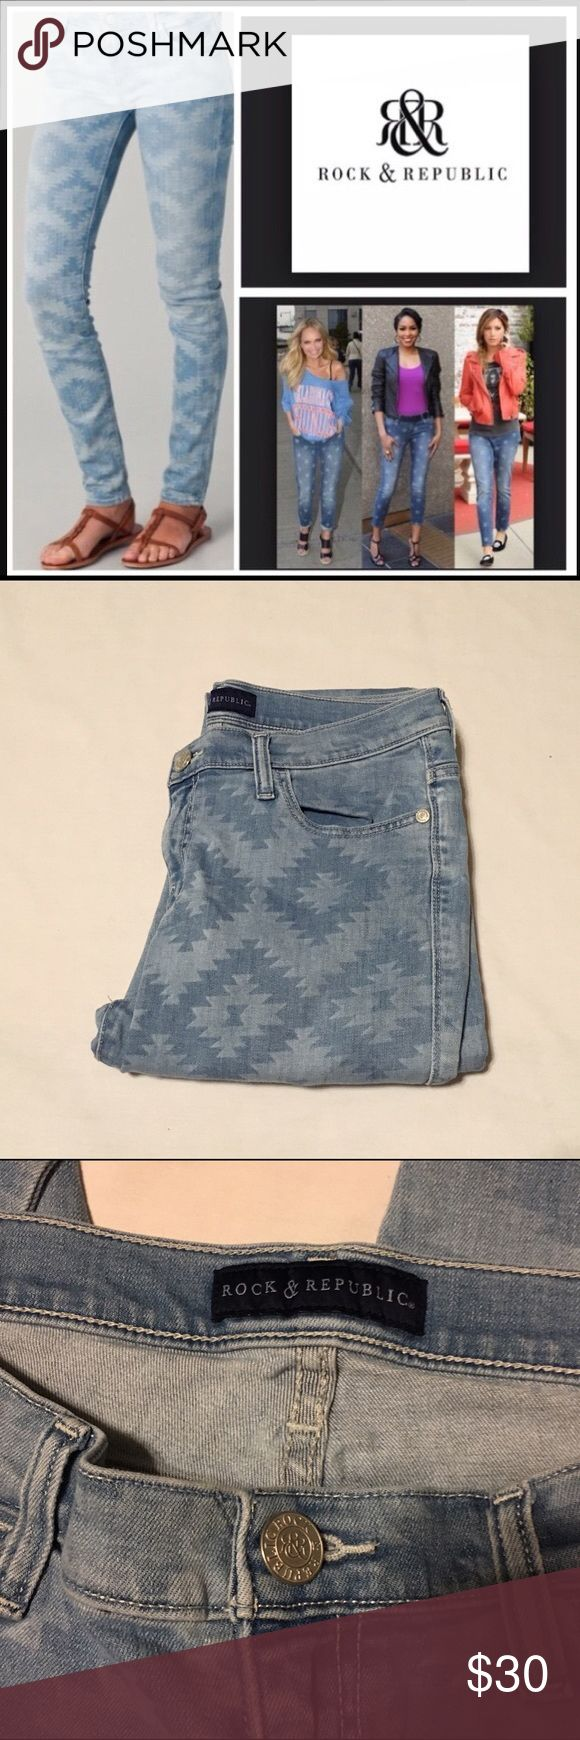 """Rock & Republic Aztec printed skinny jeans In like new condition, worn once. No flaws! Light wash.                                                            28"""" inseam, 17 1/2"""" waist, 20"""" hips, 10"""" rise. Rock & Republic Jeans Skinny"""